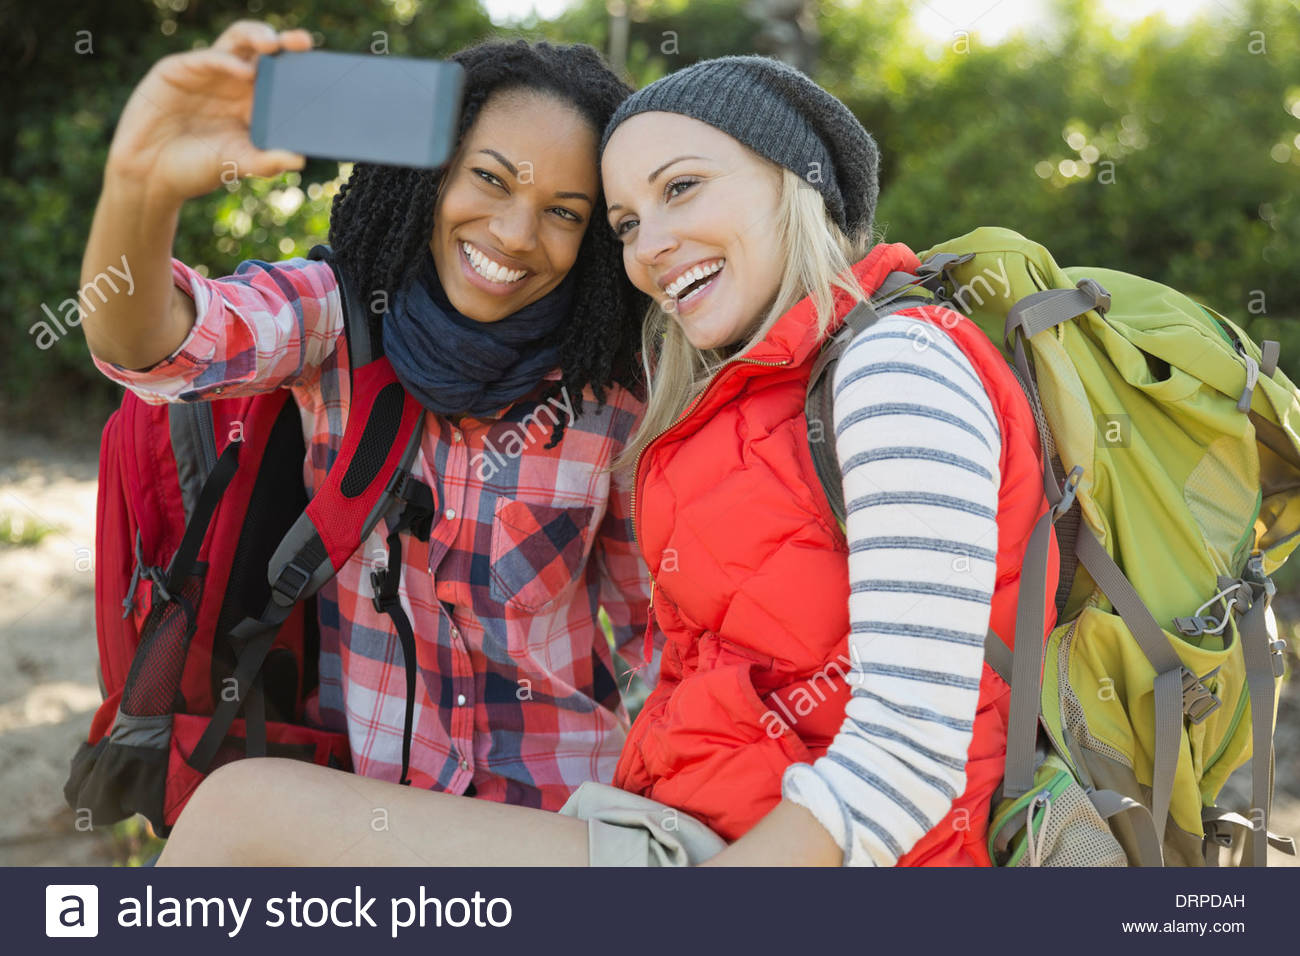 Female backpackers taking self portrait with smart phone - Stock Image